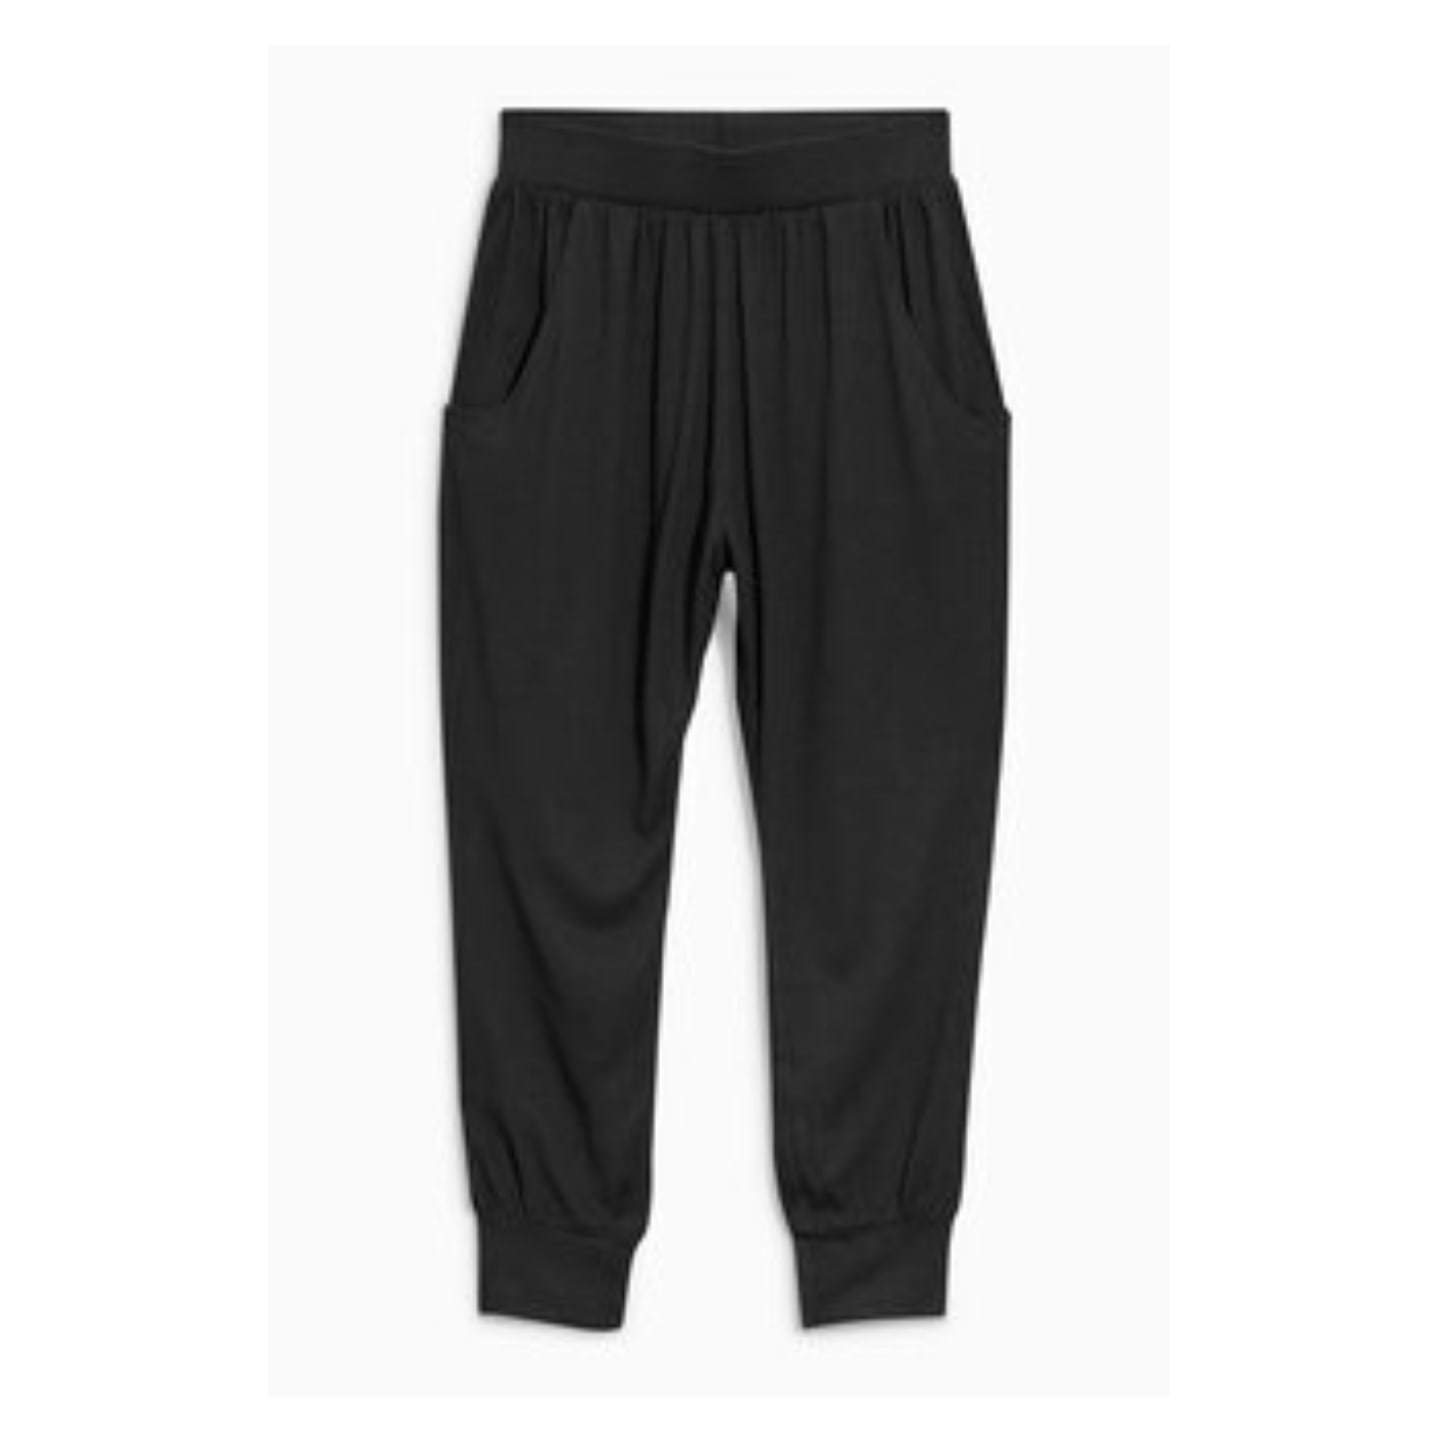 Next Girls Black Traveller Pants - Stockpoint Apparel Outlet